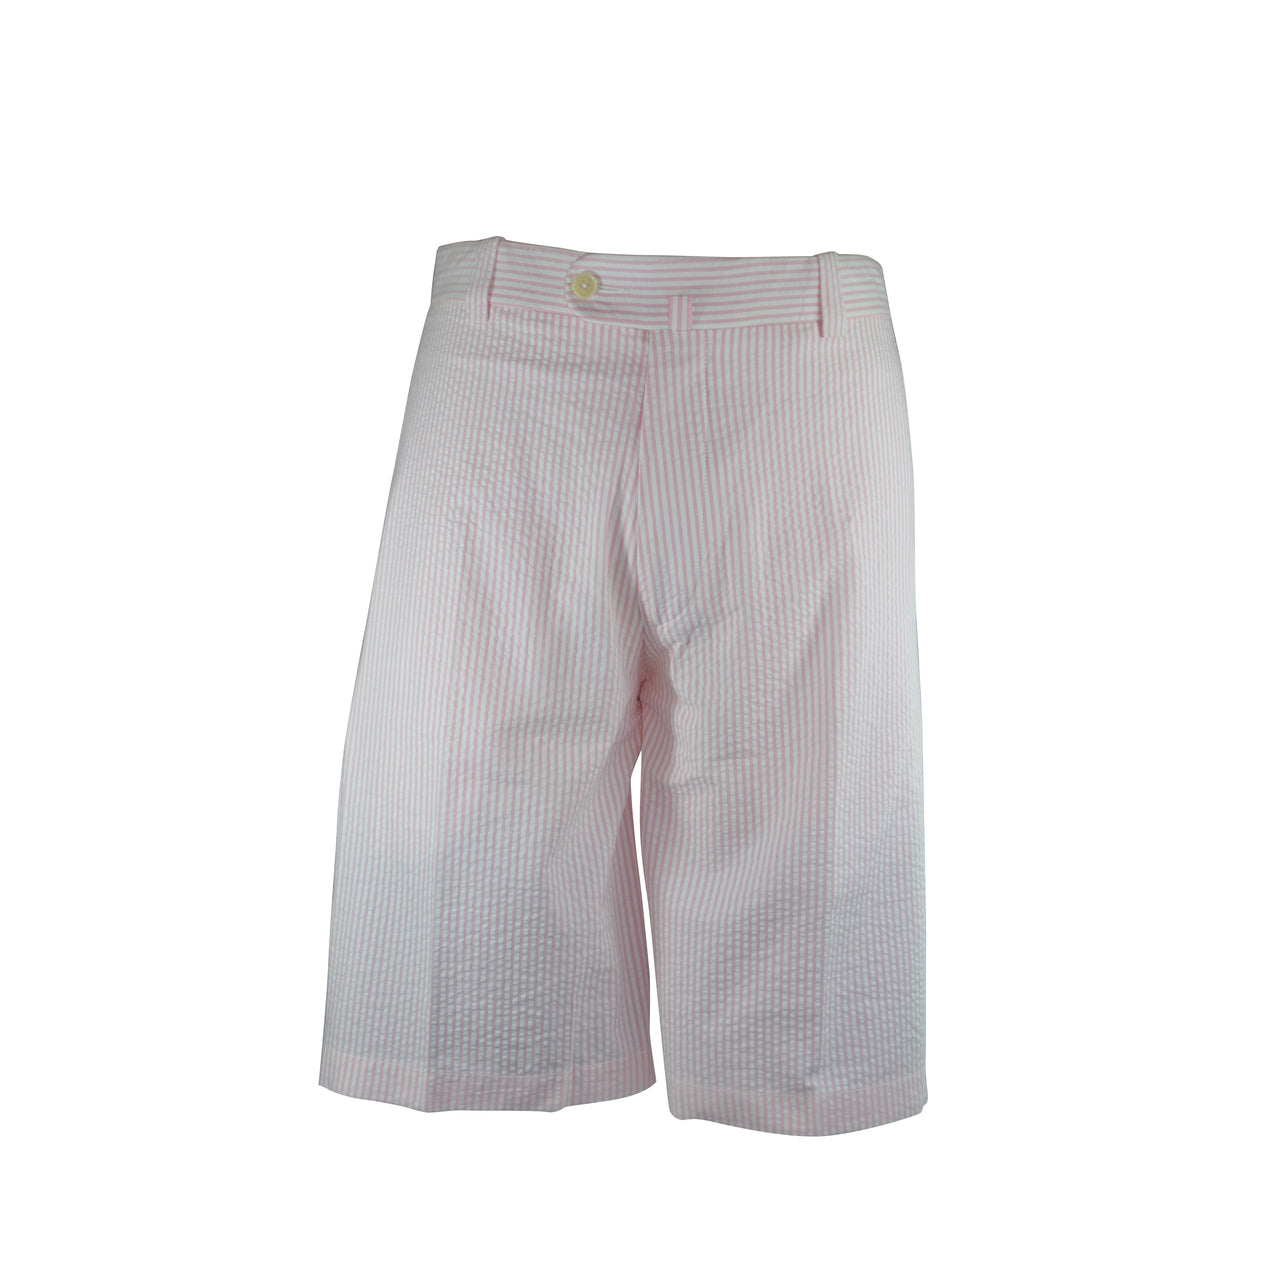 Monterey Flat Front Shorts - Pink